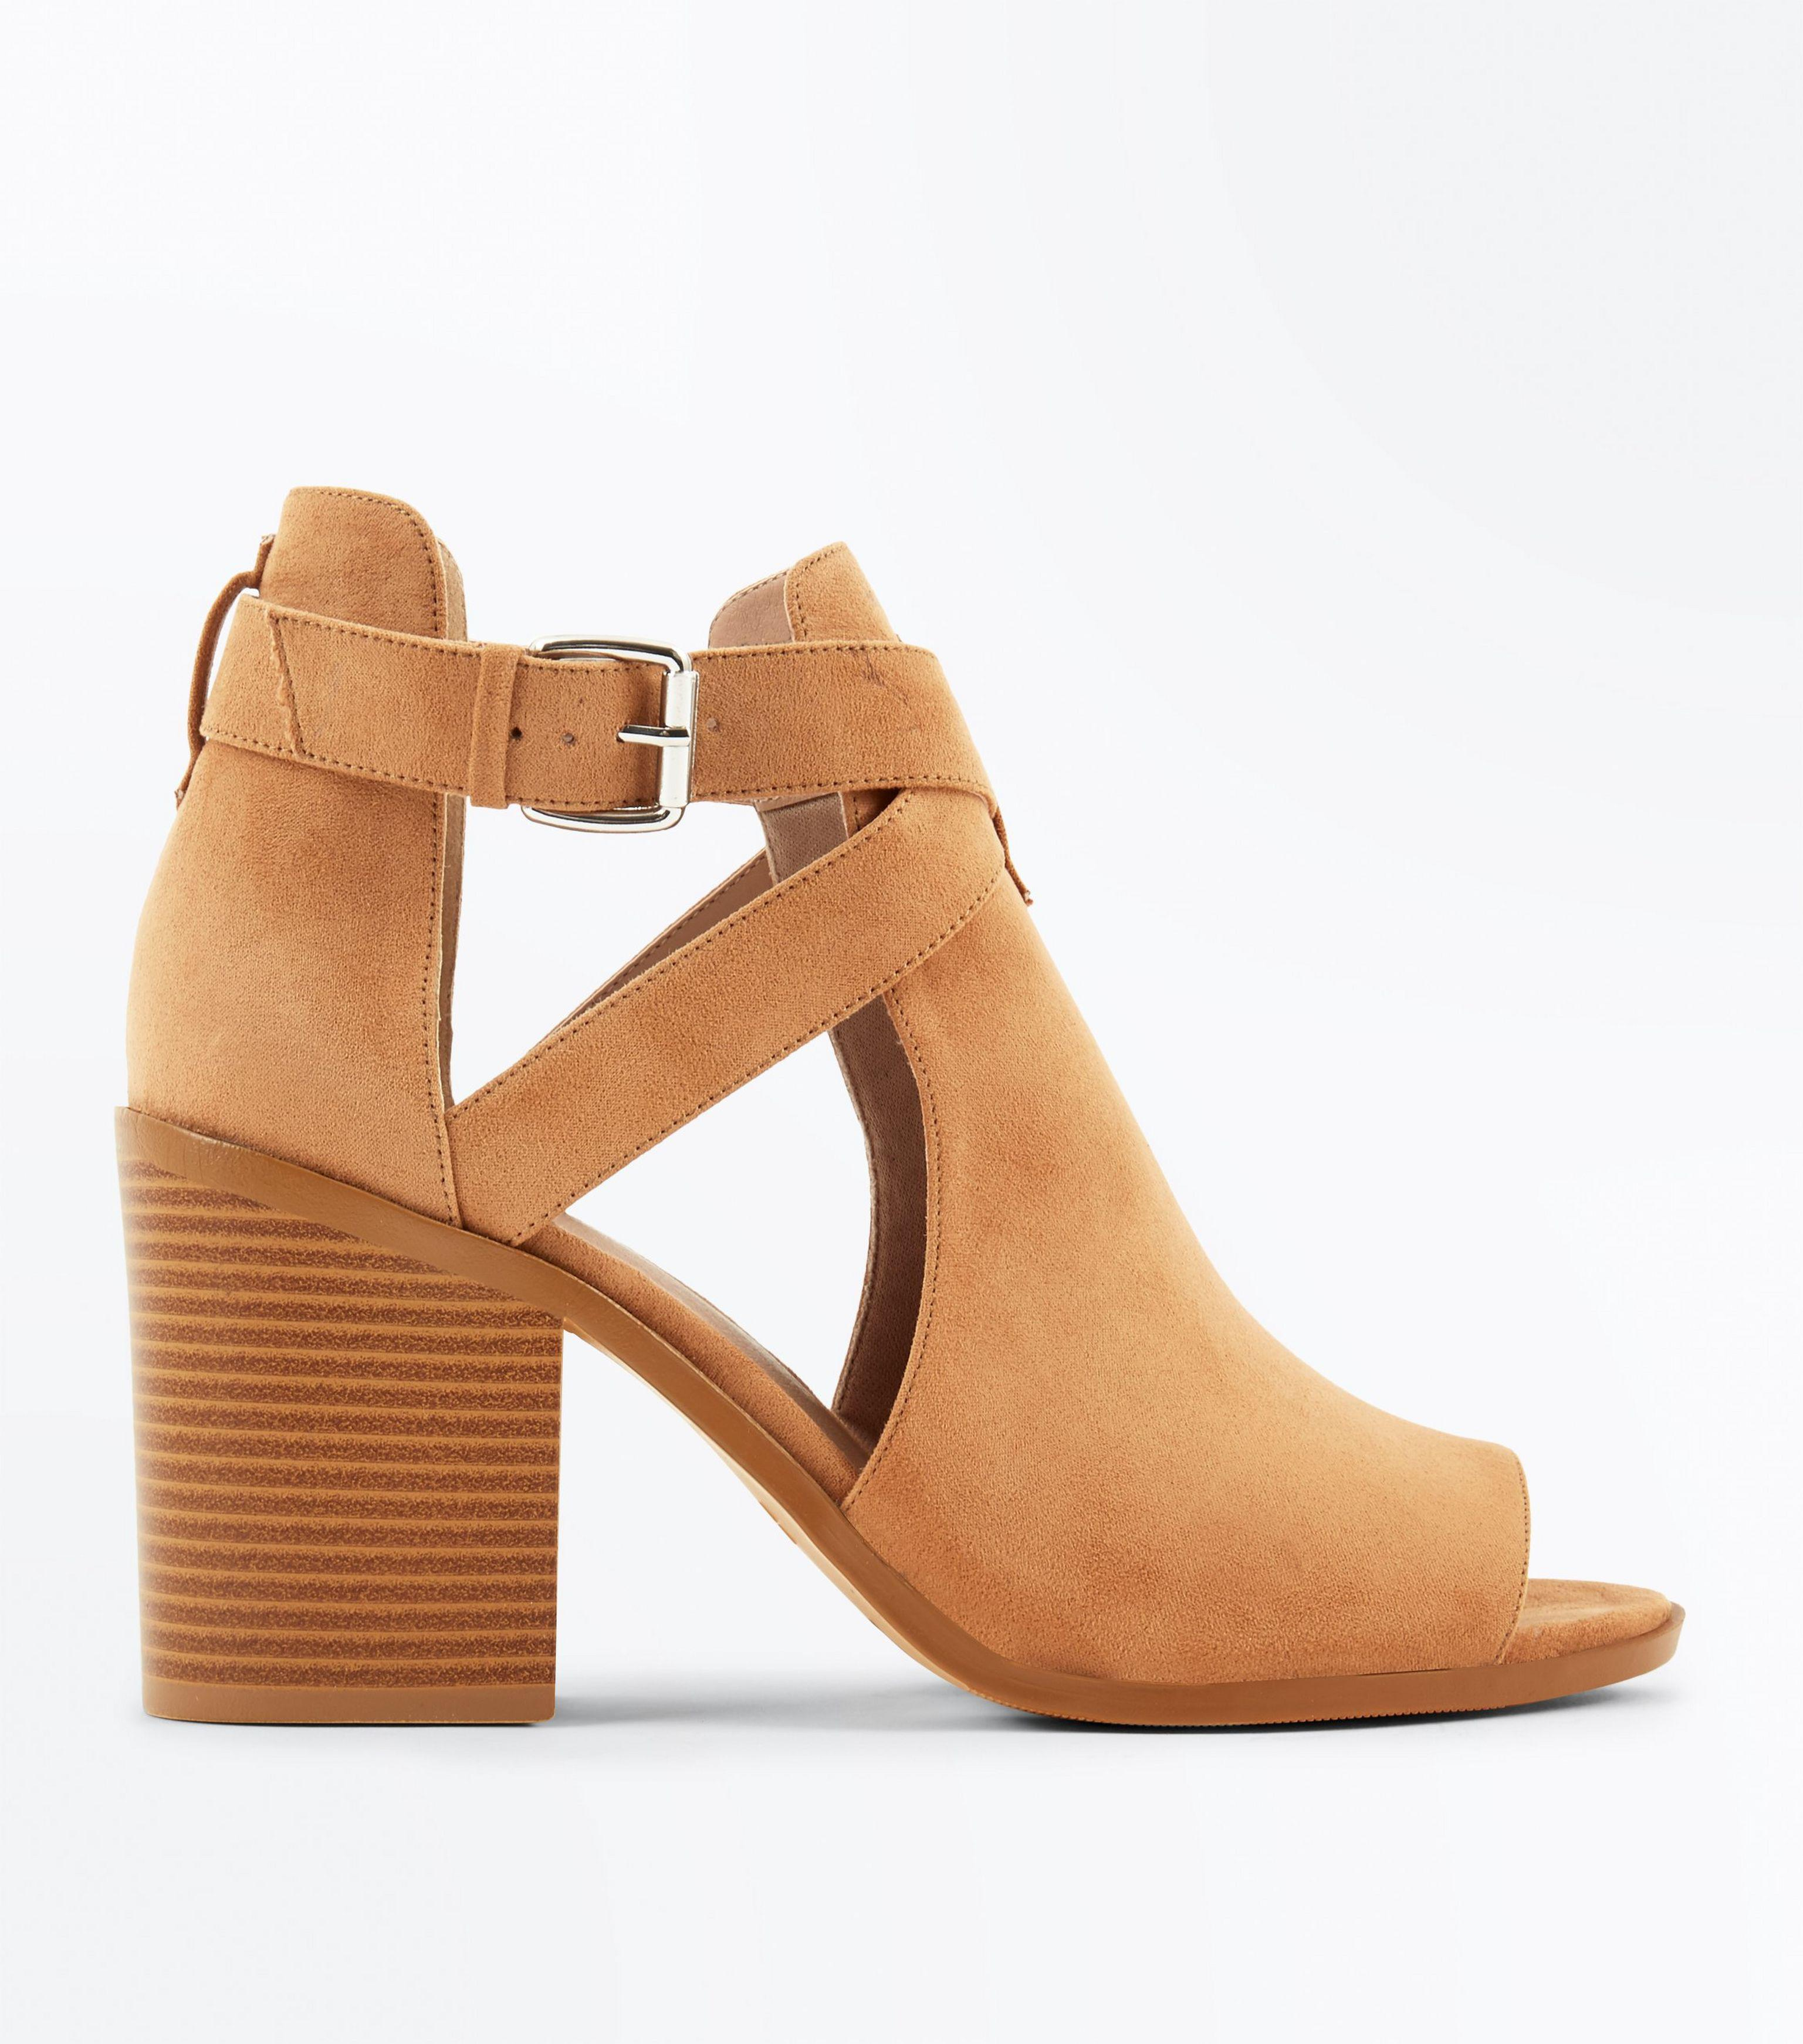 b47b1c19663 New Look Wide Fit Tan Cut Out Suedette Heel Sandals in Brown - Lyst